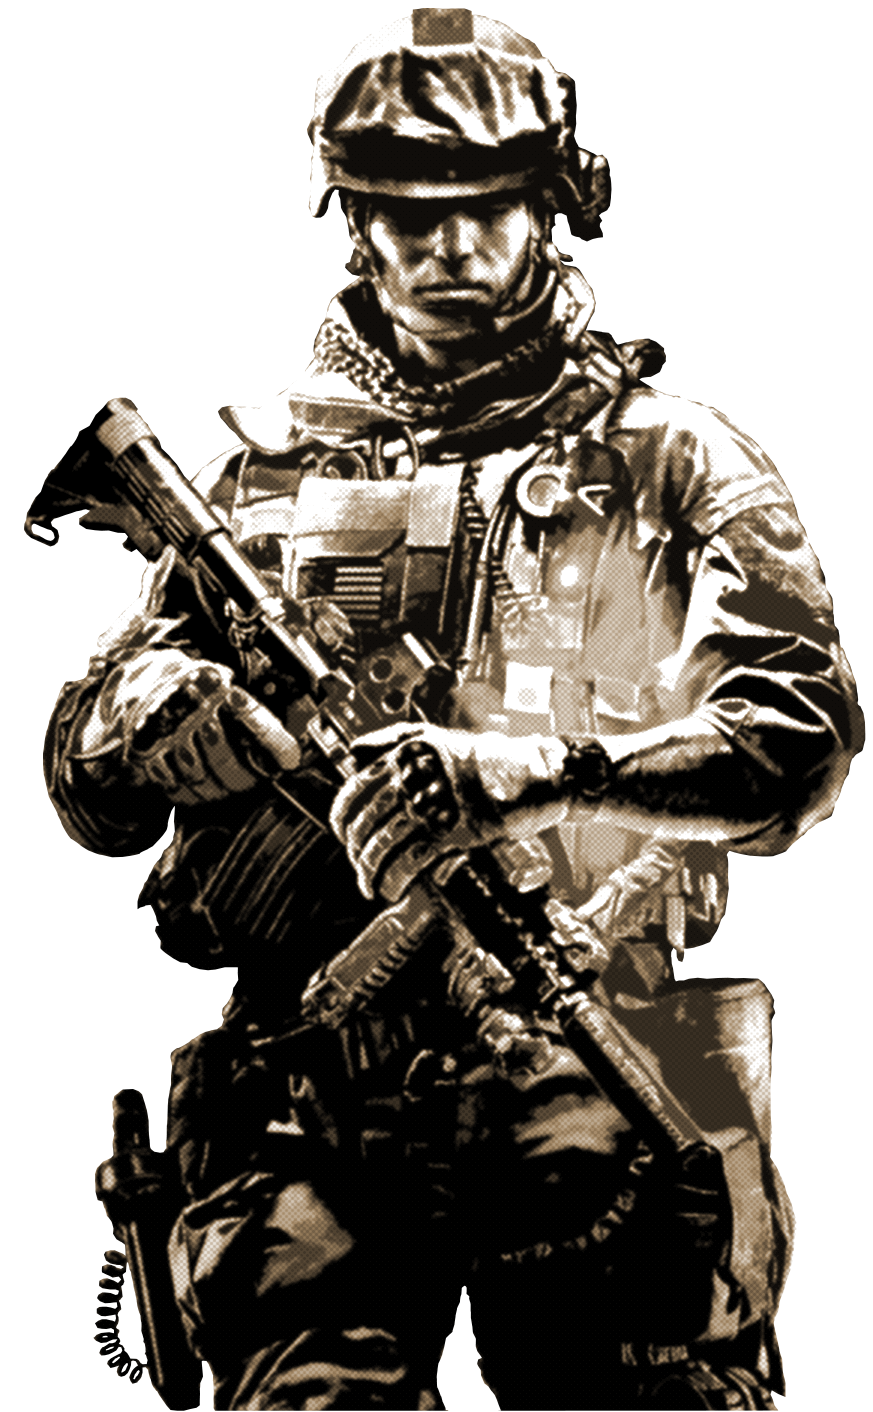 PNG Military Soldier - 73405